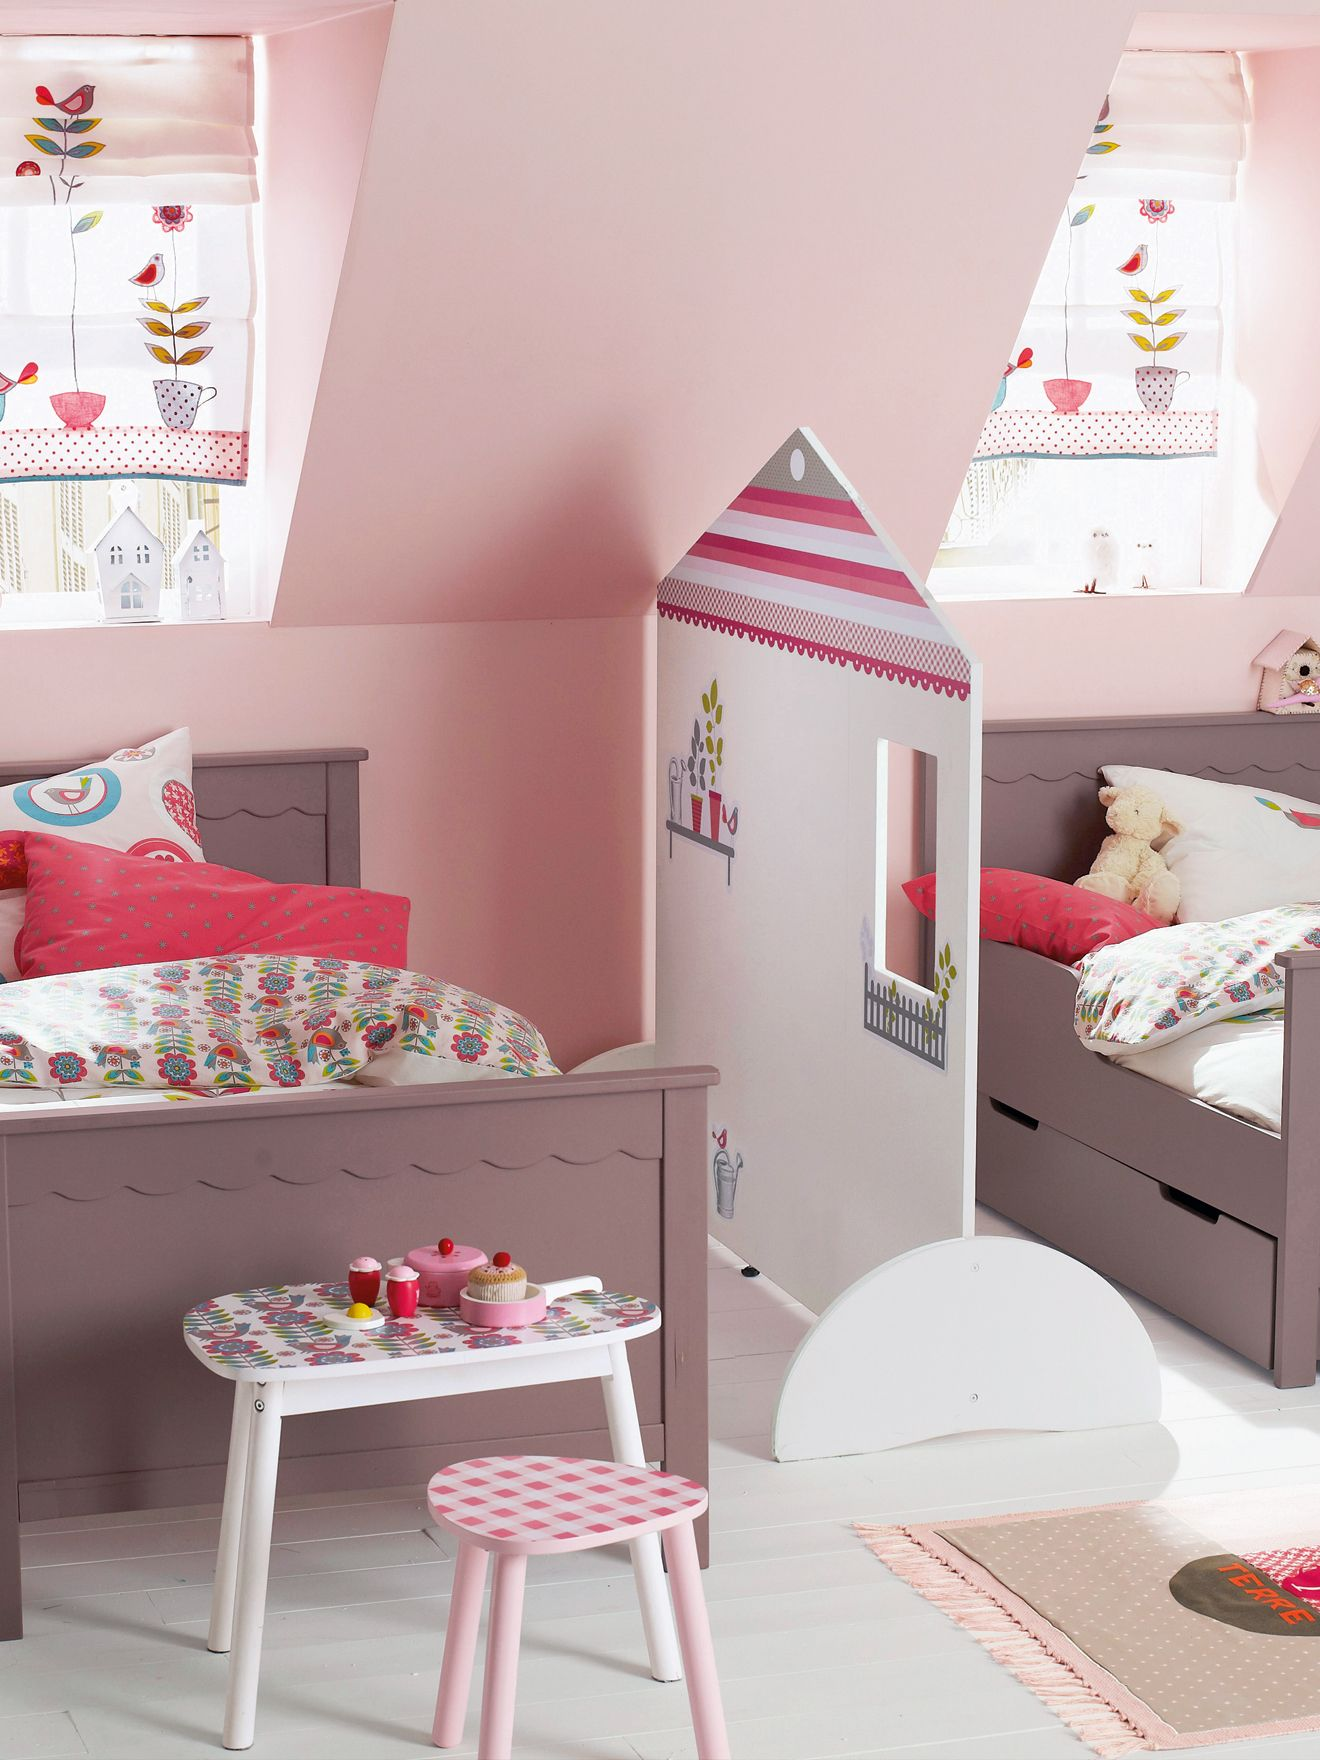 cloison maisonnette paravent th me tea flore kid s room pinterest. Black Bedroom Furniture Sets. Home Design Ideas